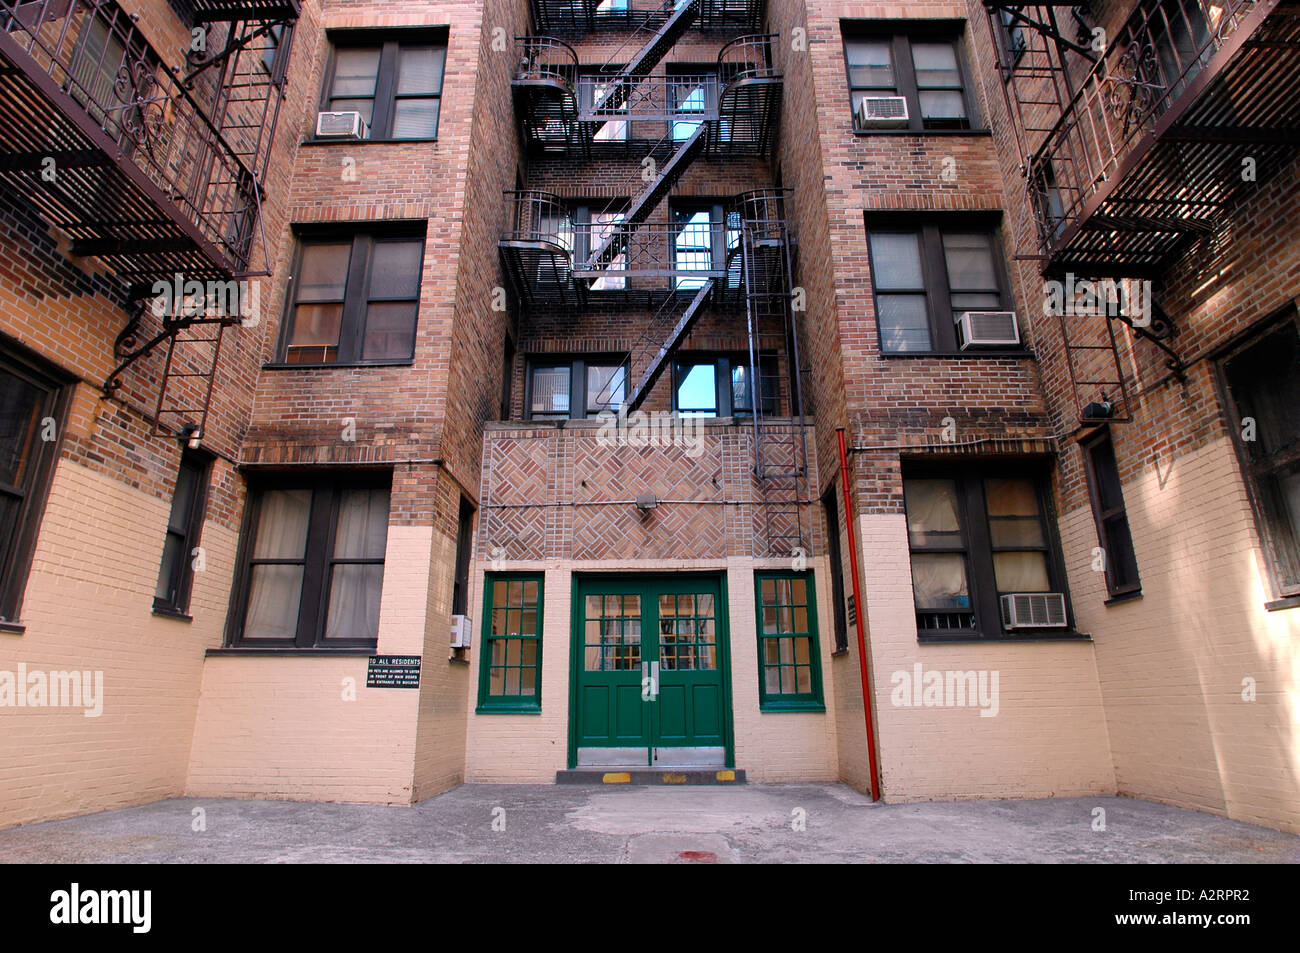 City Apartment Building Entrance entrance to a new york city apartment bulding stock photo, royalty